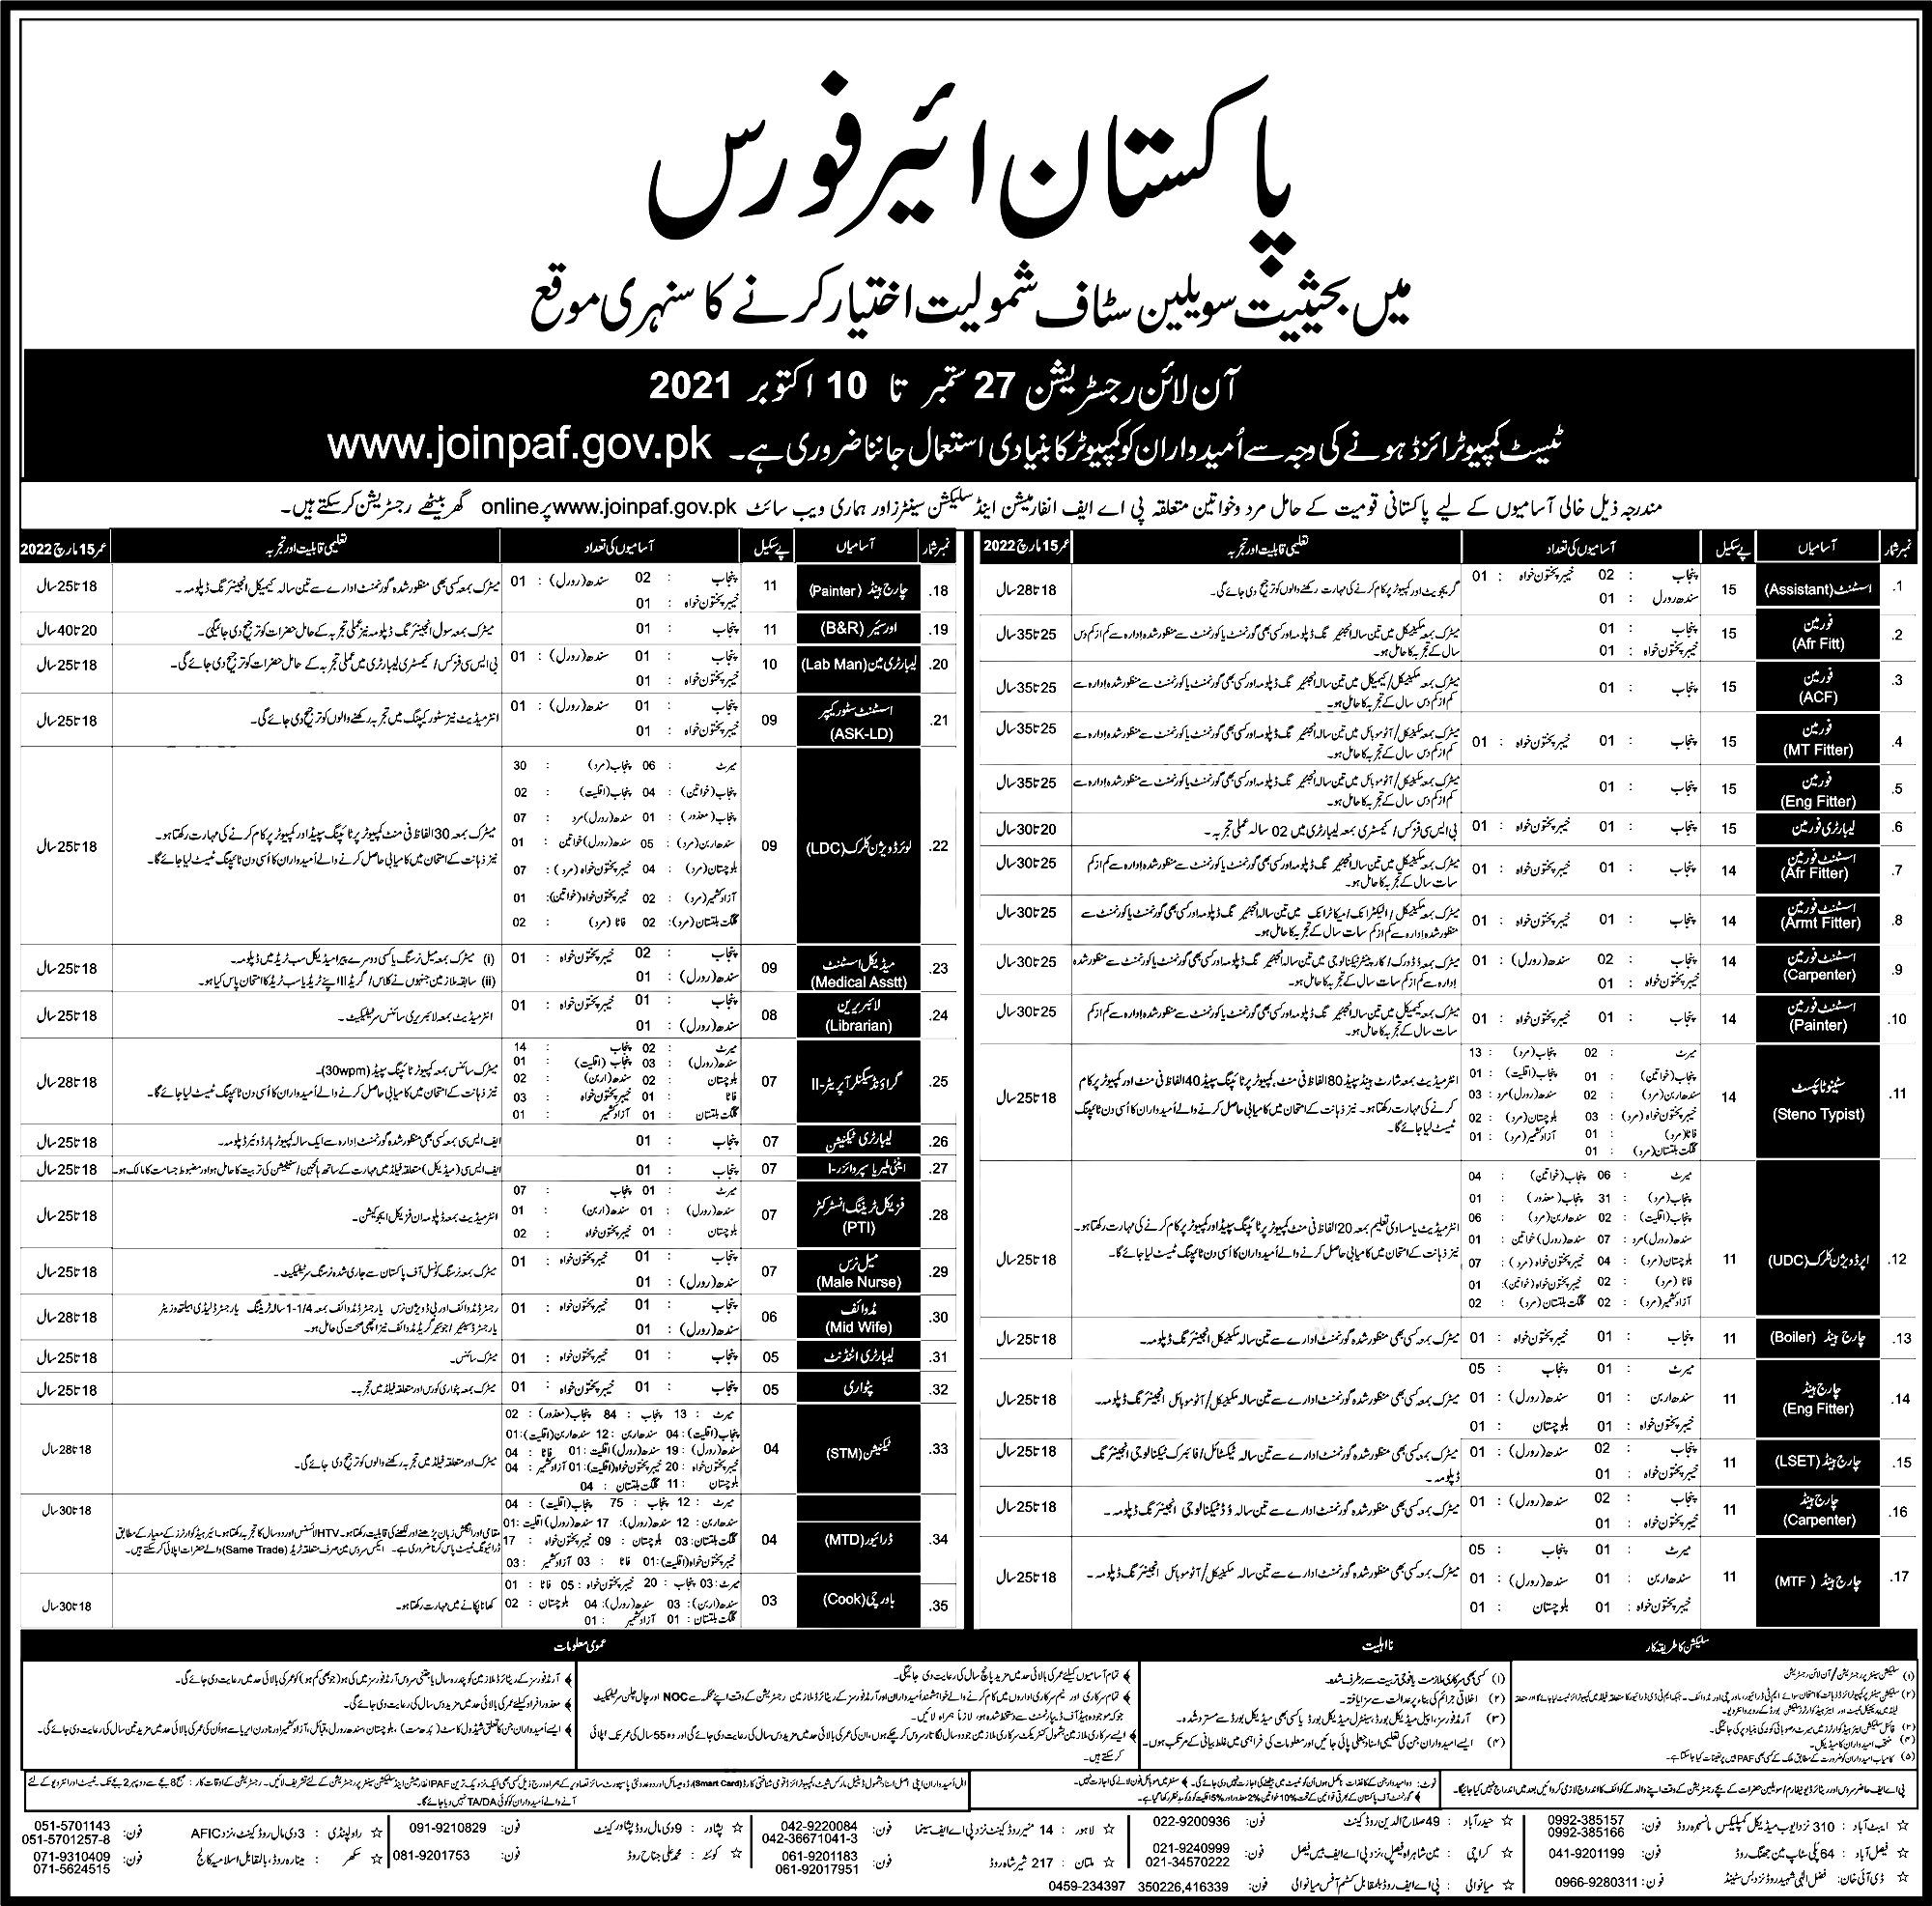 Join PAF as Civilian Jobs 2021